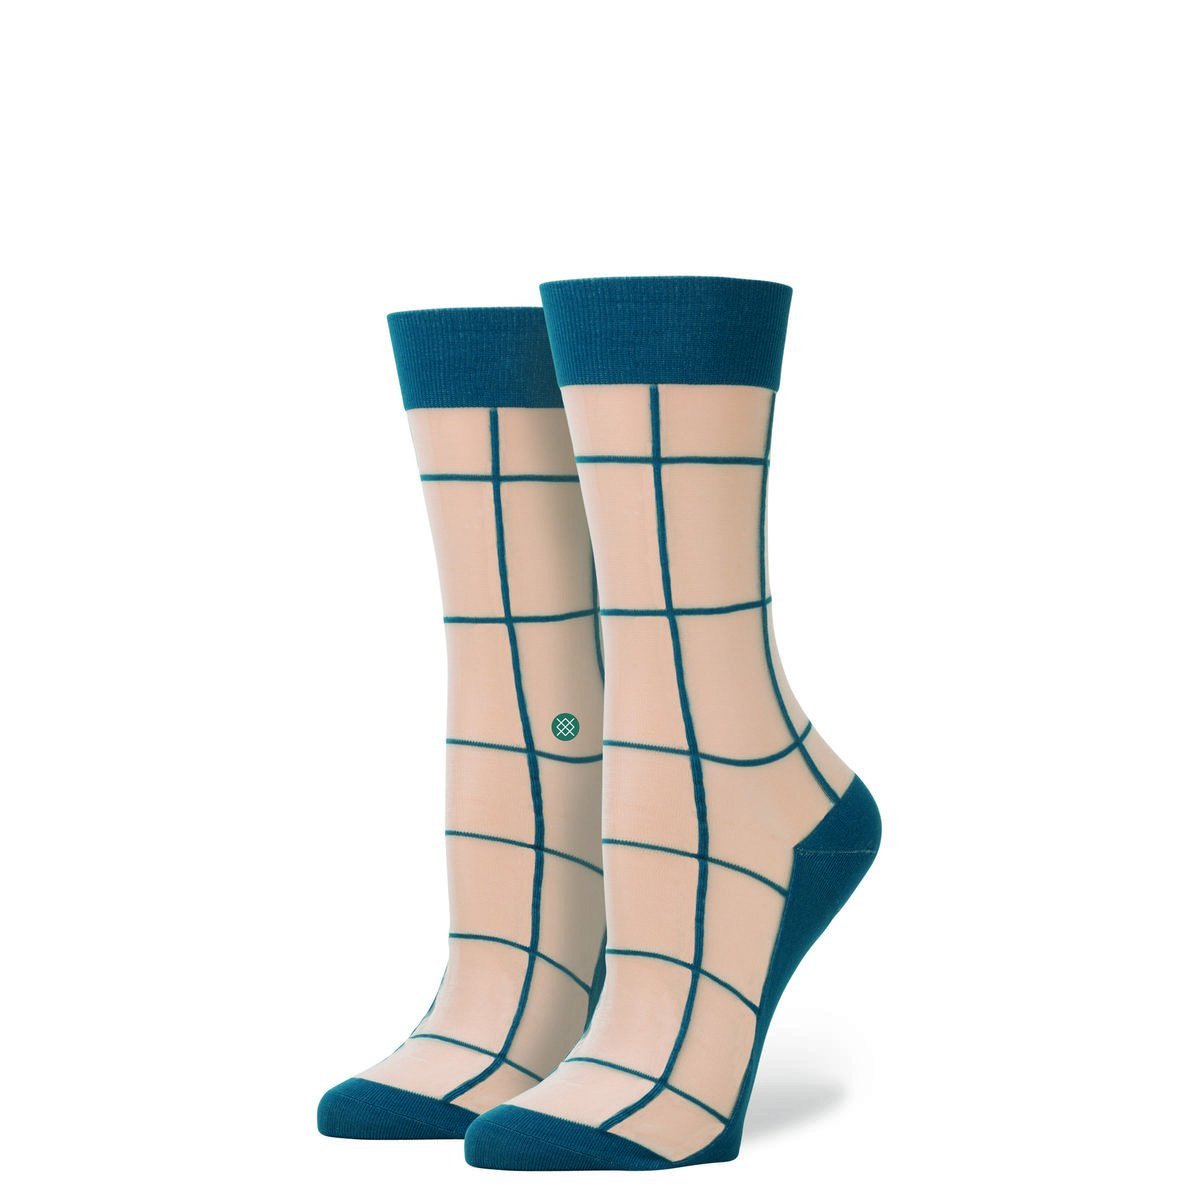 Stance for Women: Retro Teal